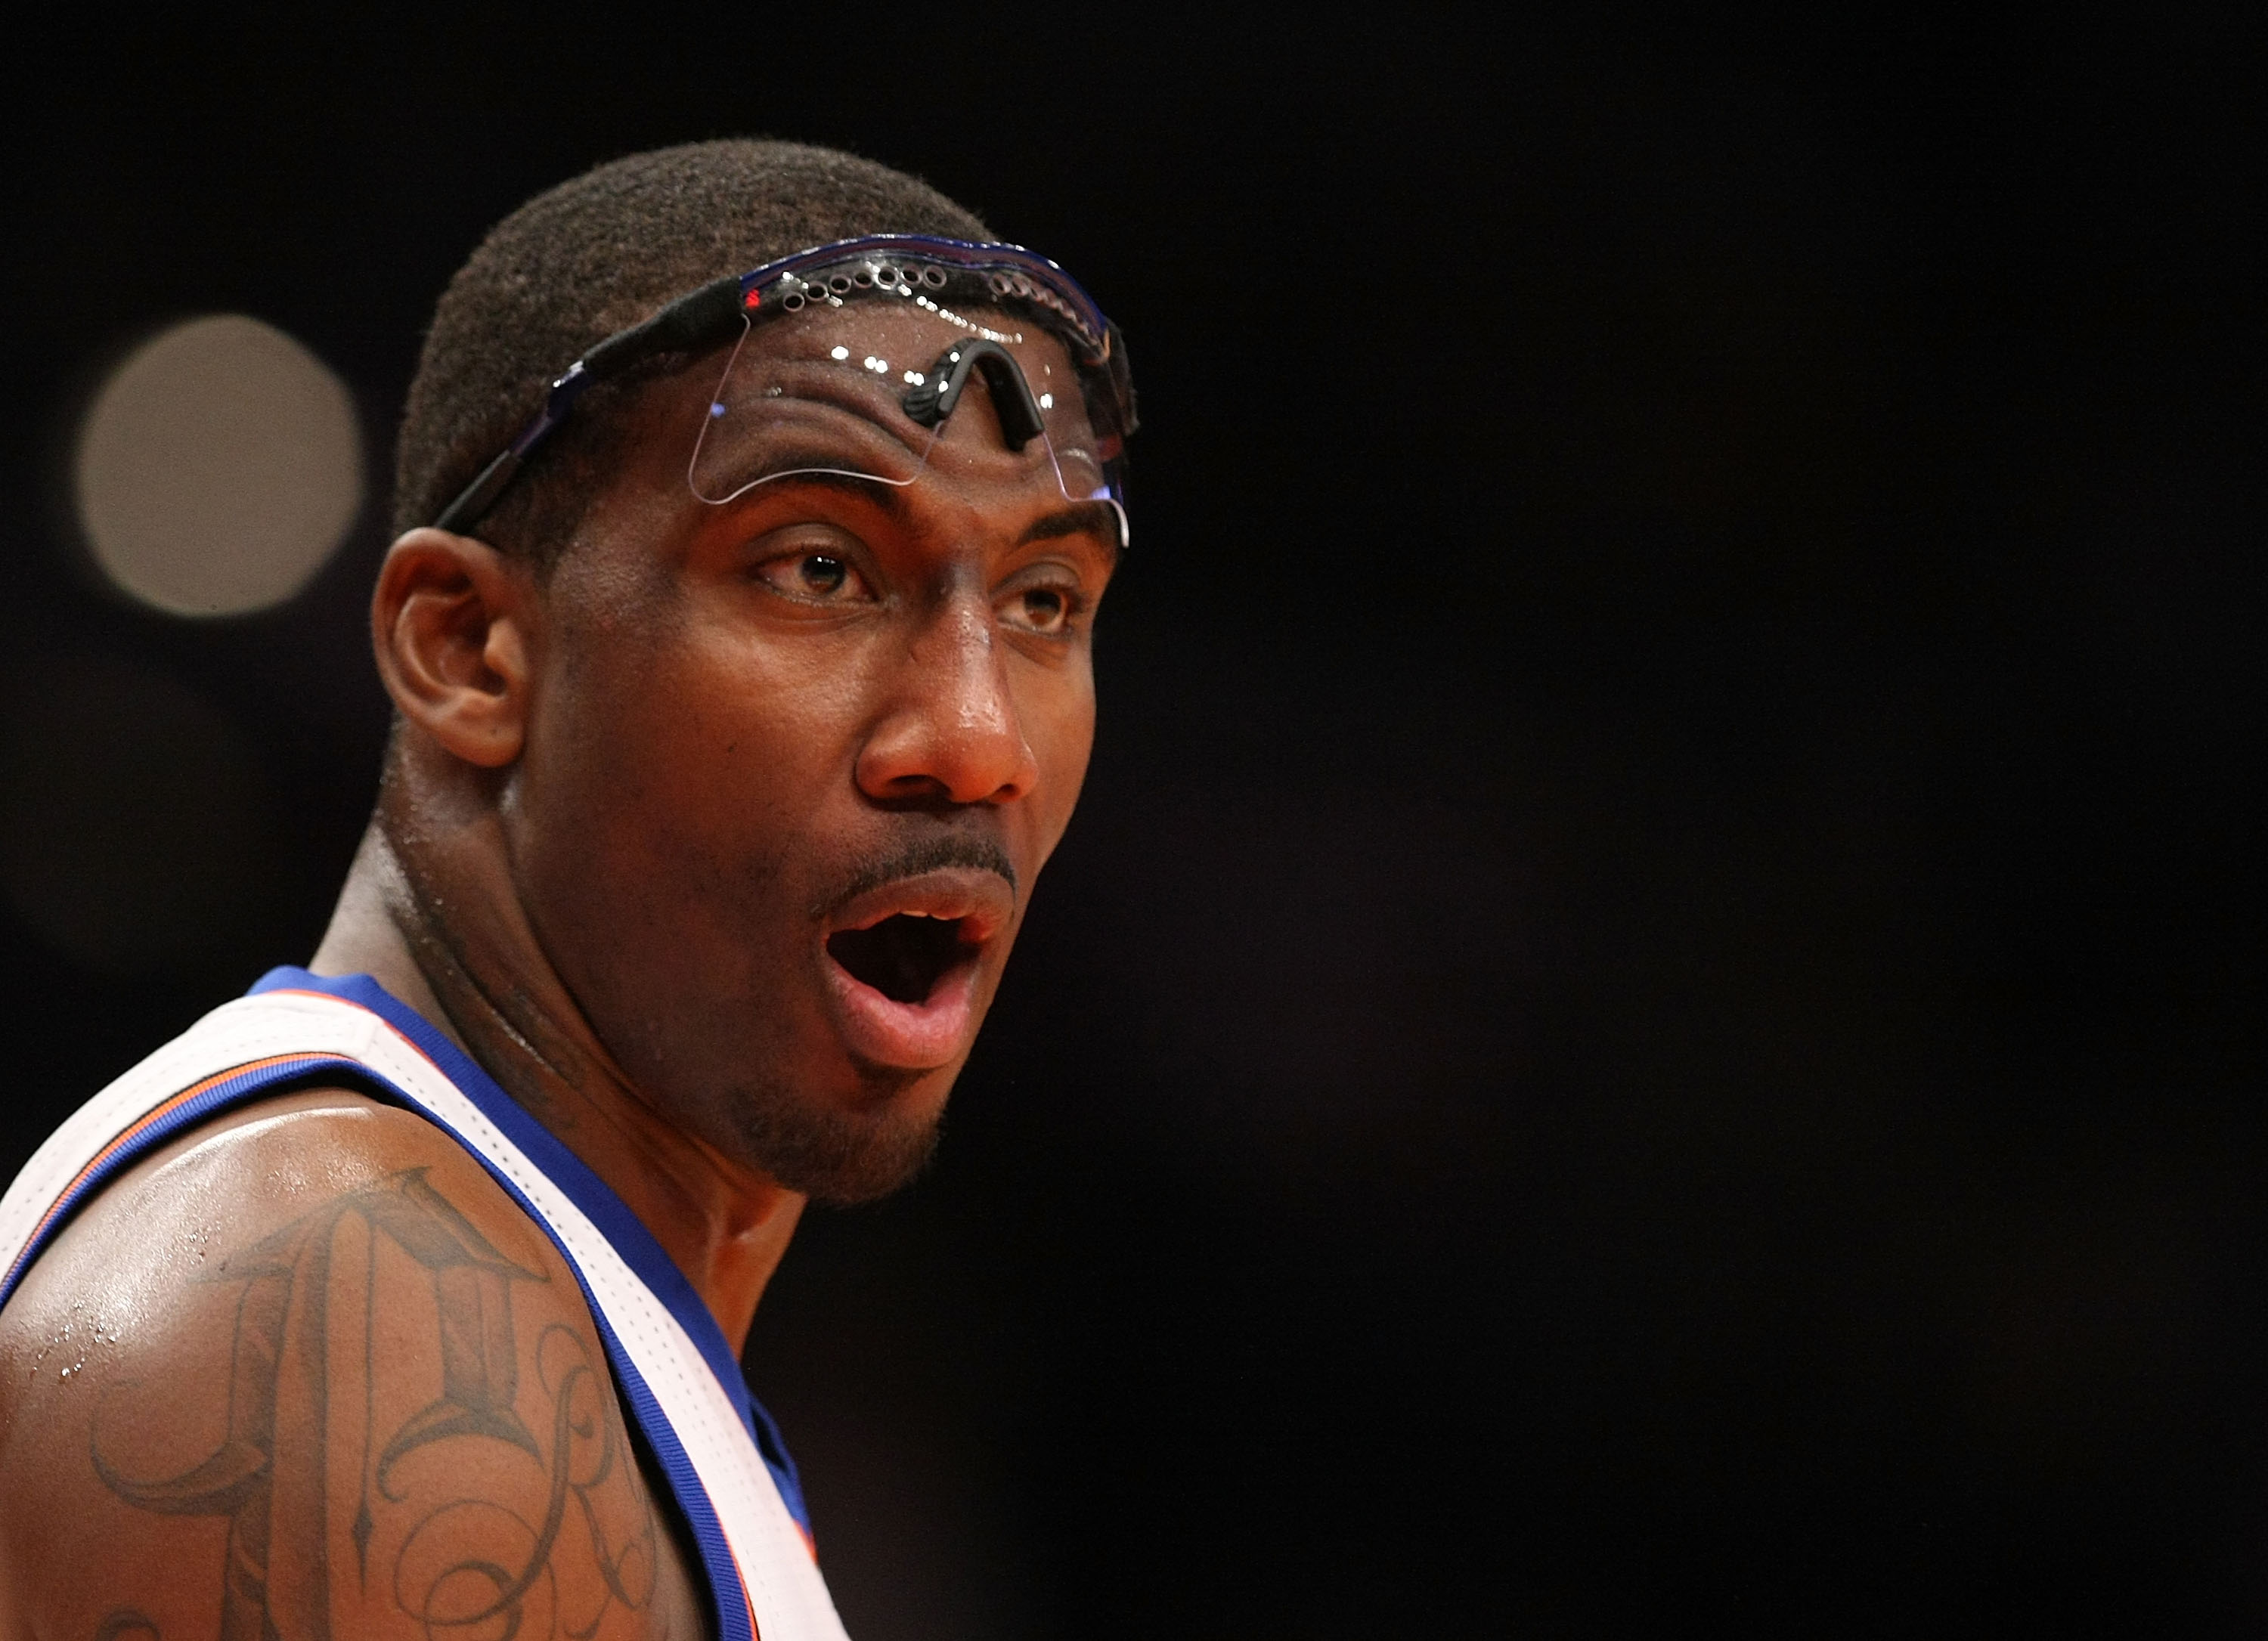 NEW YORK - DECEMBER 17:  Amar'e Stoudemire #1 of the New York Knicks looks on against  the Miami Heat at Madison Square Garden on December 17, 2010 in New York City. NOTE TO USER: User expressly acknowledges and agrees that, by downloading and or using th